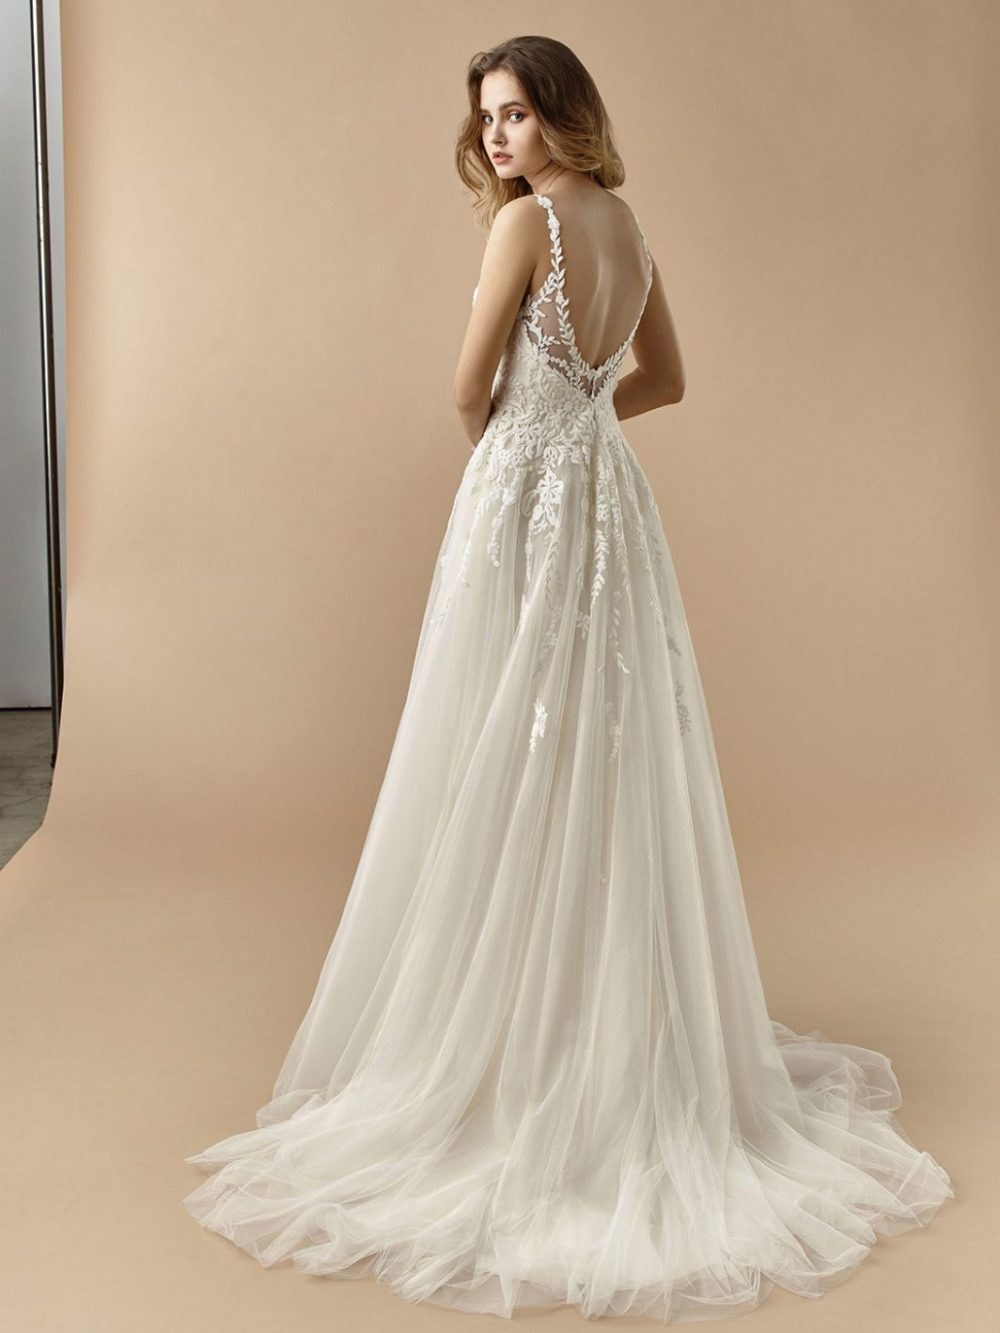 Beautiful by Enzoani Wedding gown dress BT20-15 back